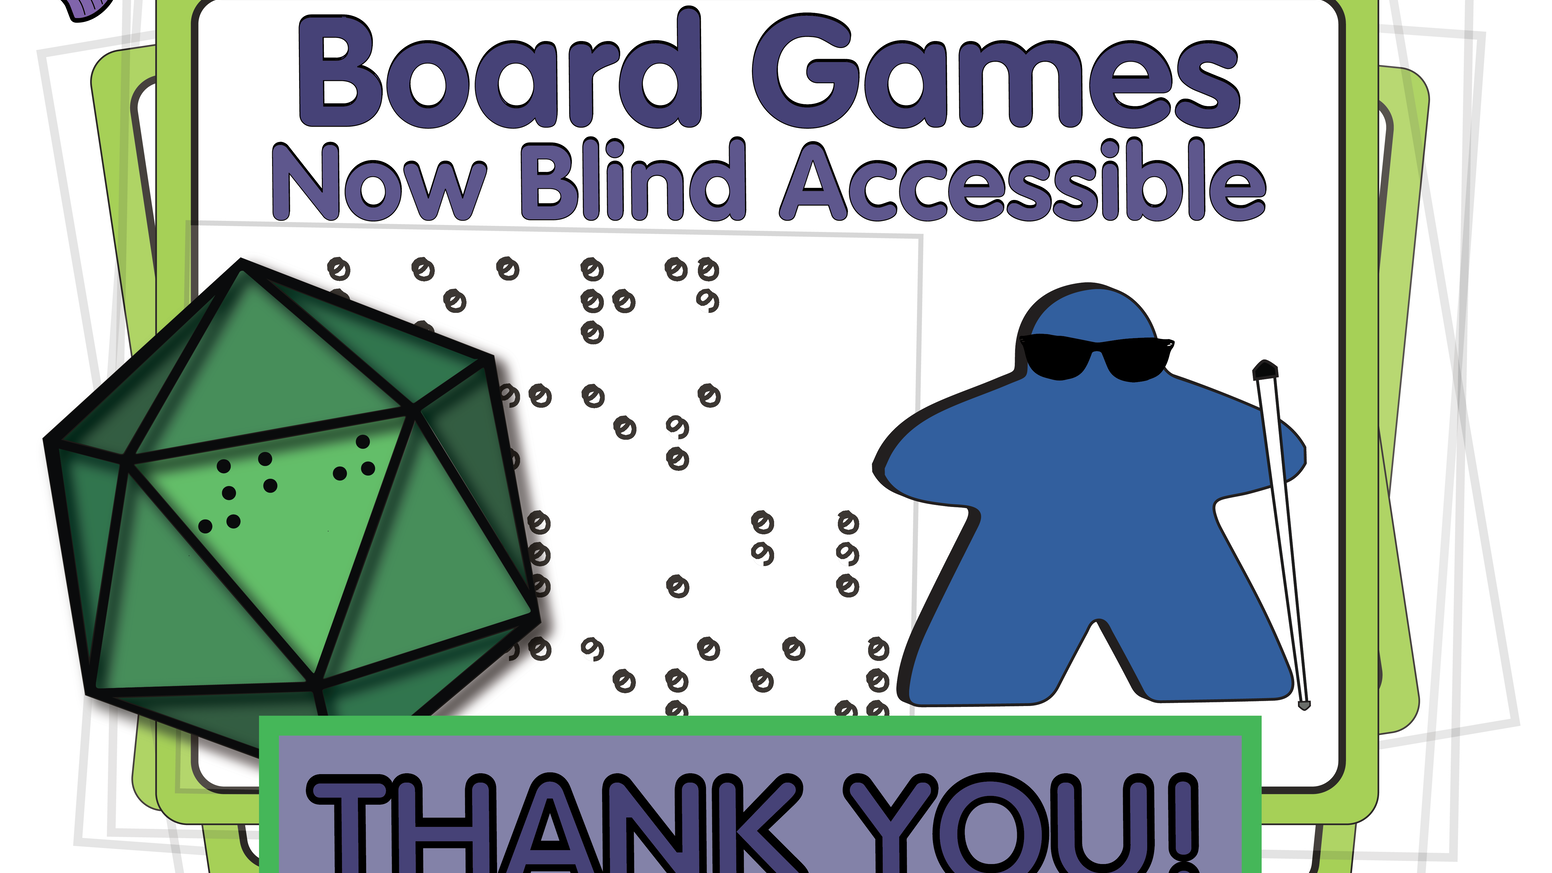 Card sleeves and accessories with Braille text enable blind gamers to enjoy the same games as their sighted friends. Available Now at www.64ouncegames.com